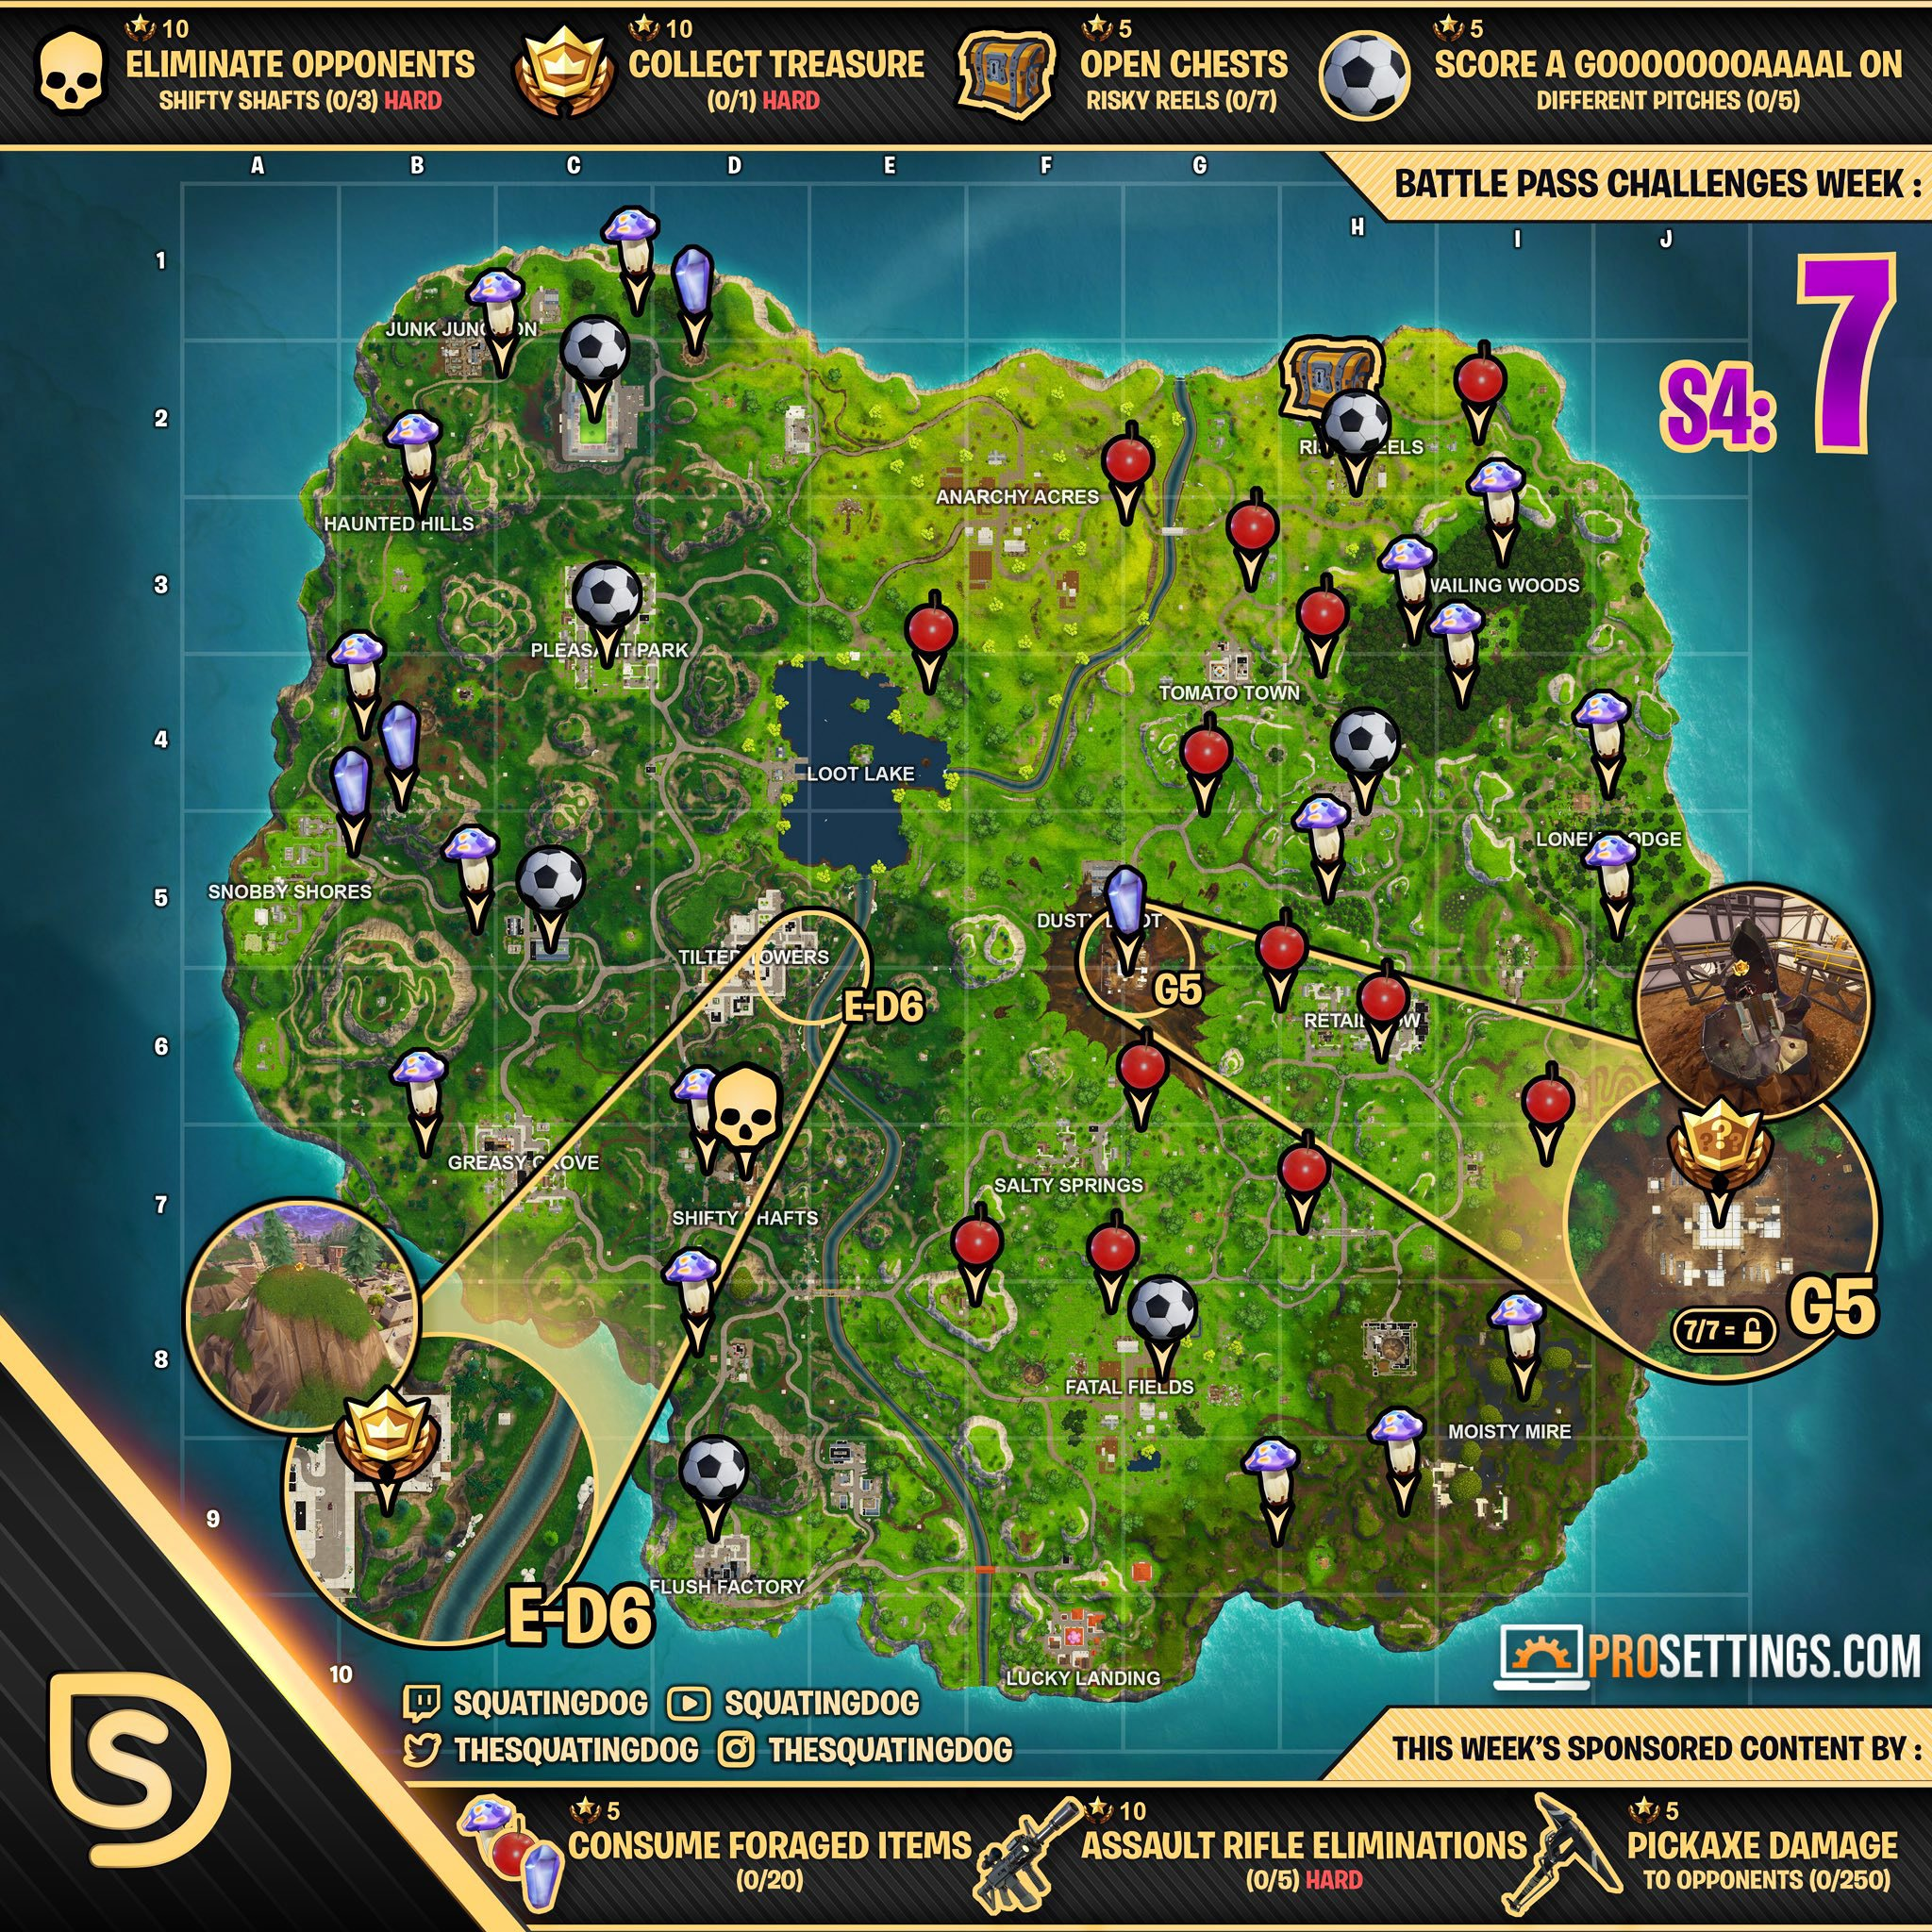 fortnite s4 week 7 battle pass challenge cheat sheet - fortnite mushrooms map